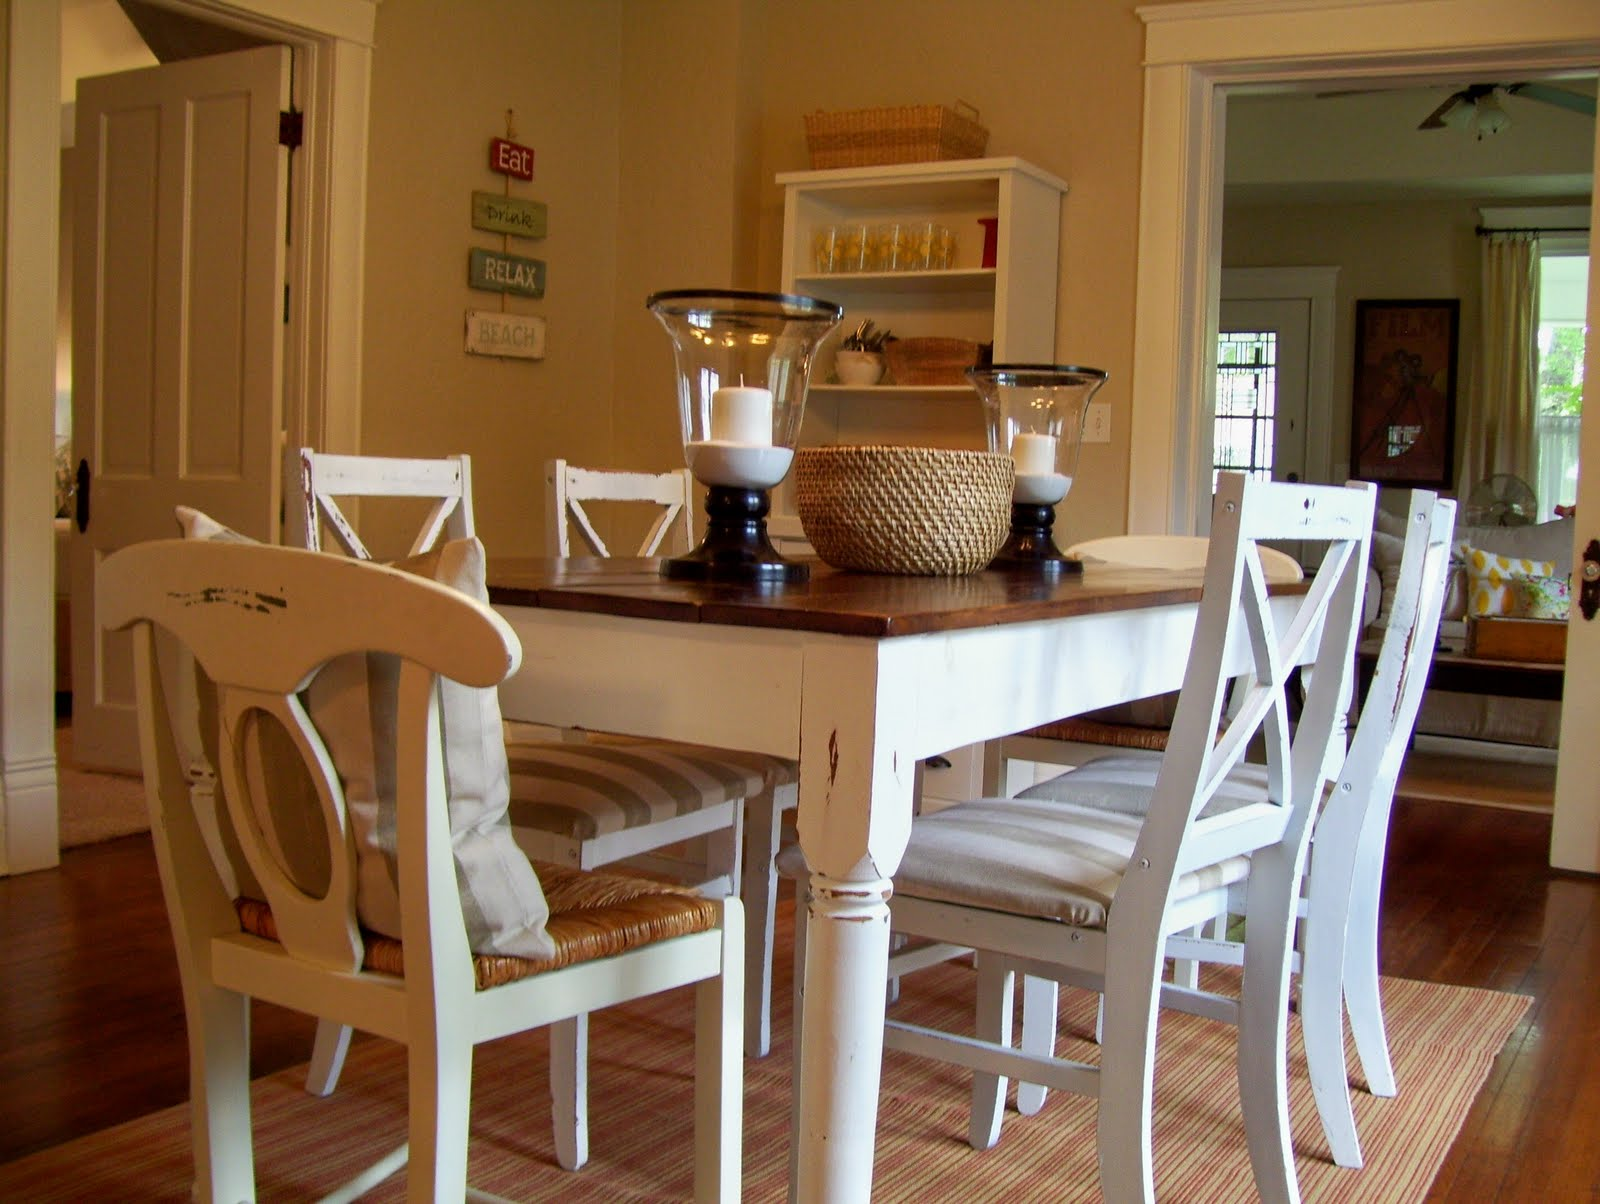 Inexpensive Upholstered Dining Chairs Childrens Table And Toys R Us Vintage Home Love: A Room Redo With Special Meaning